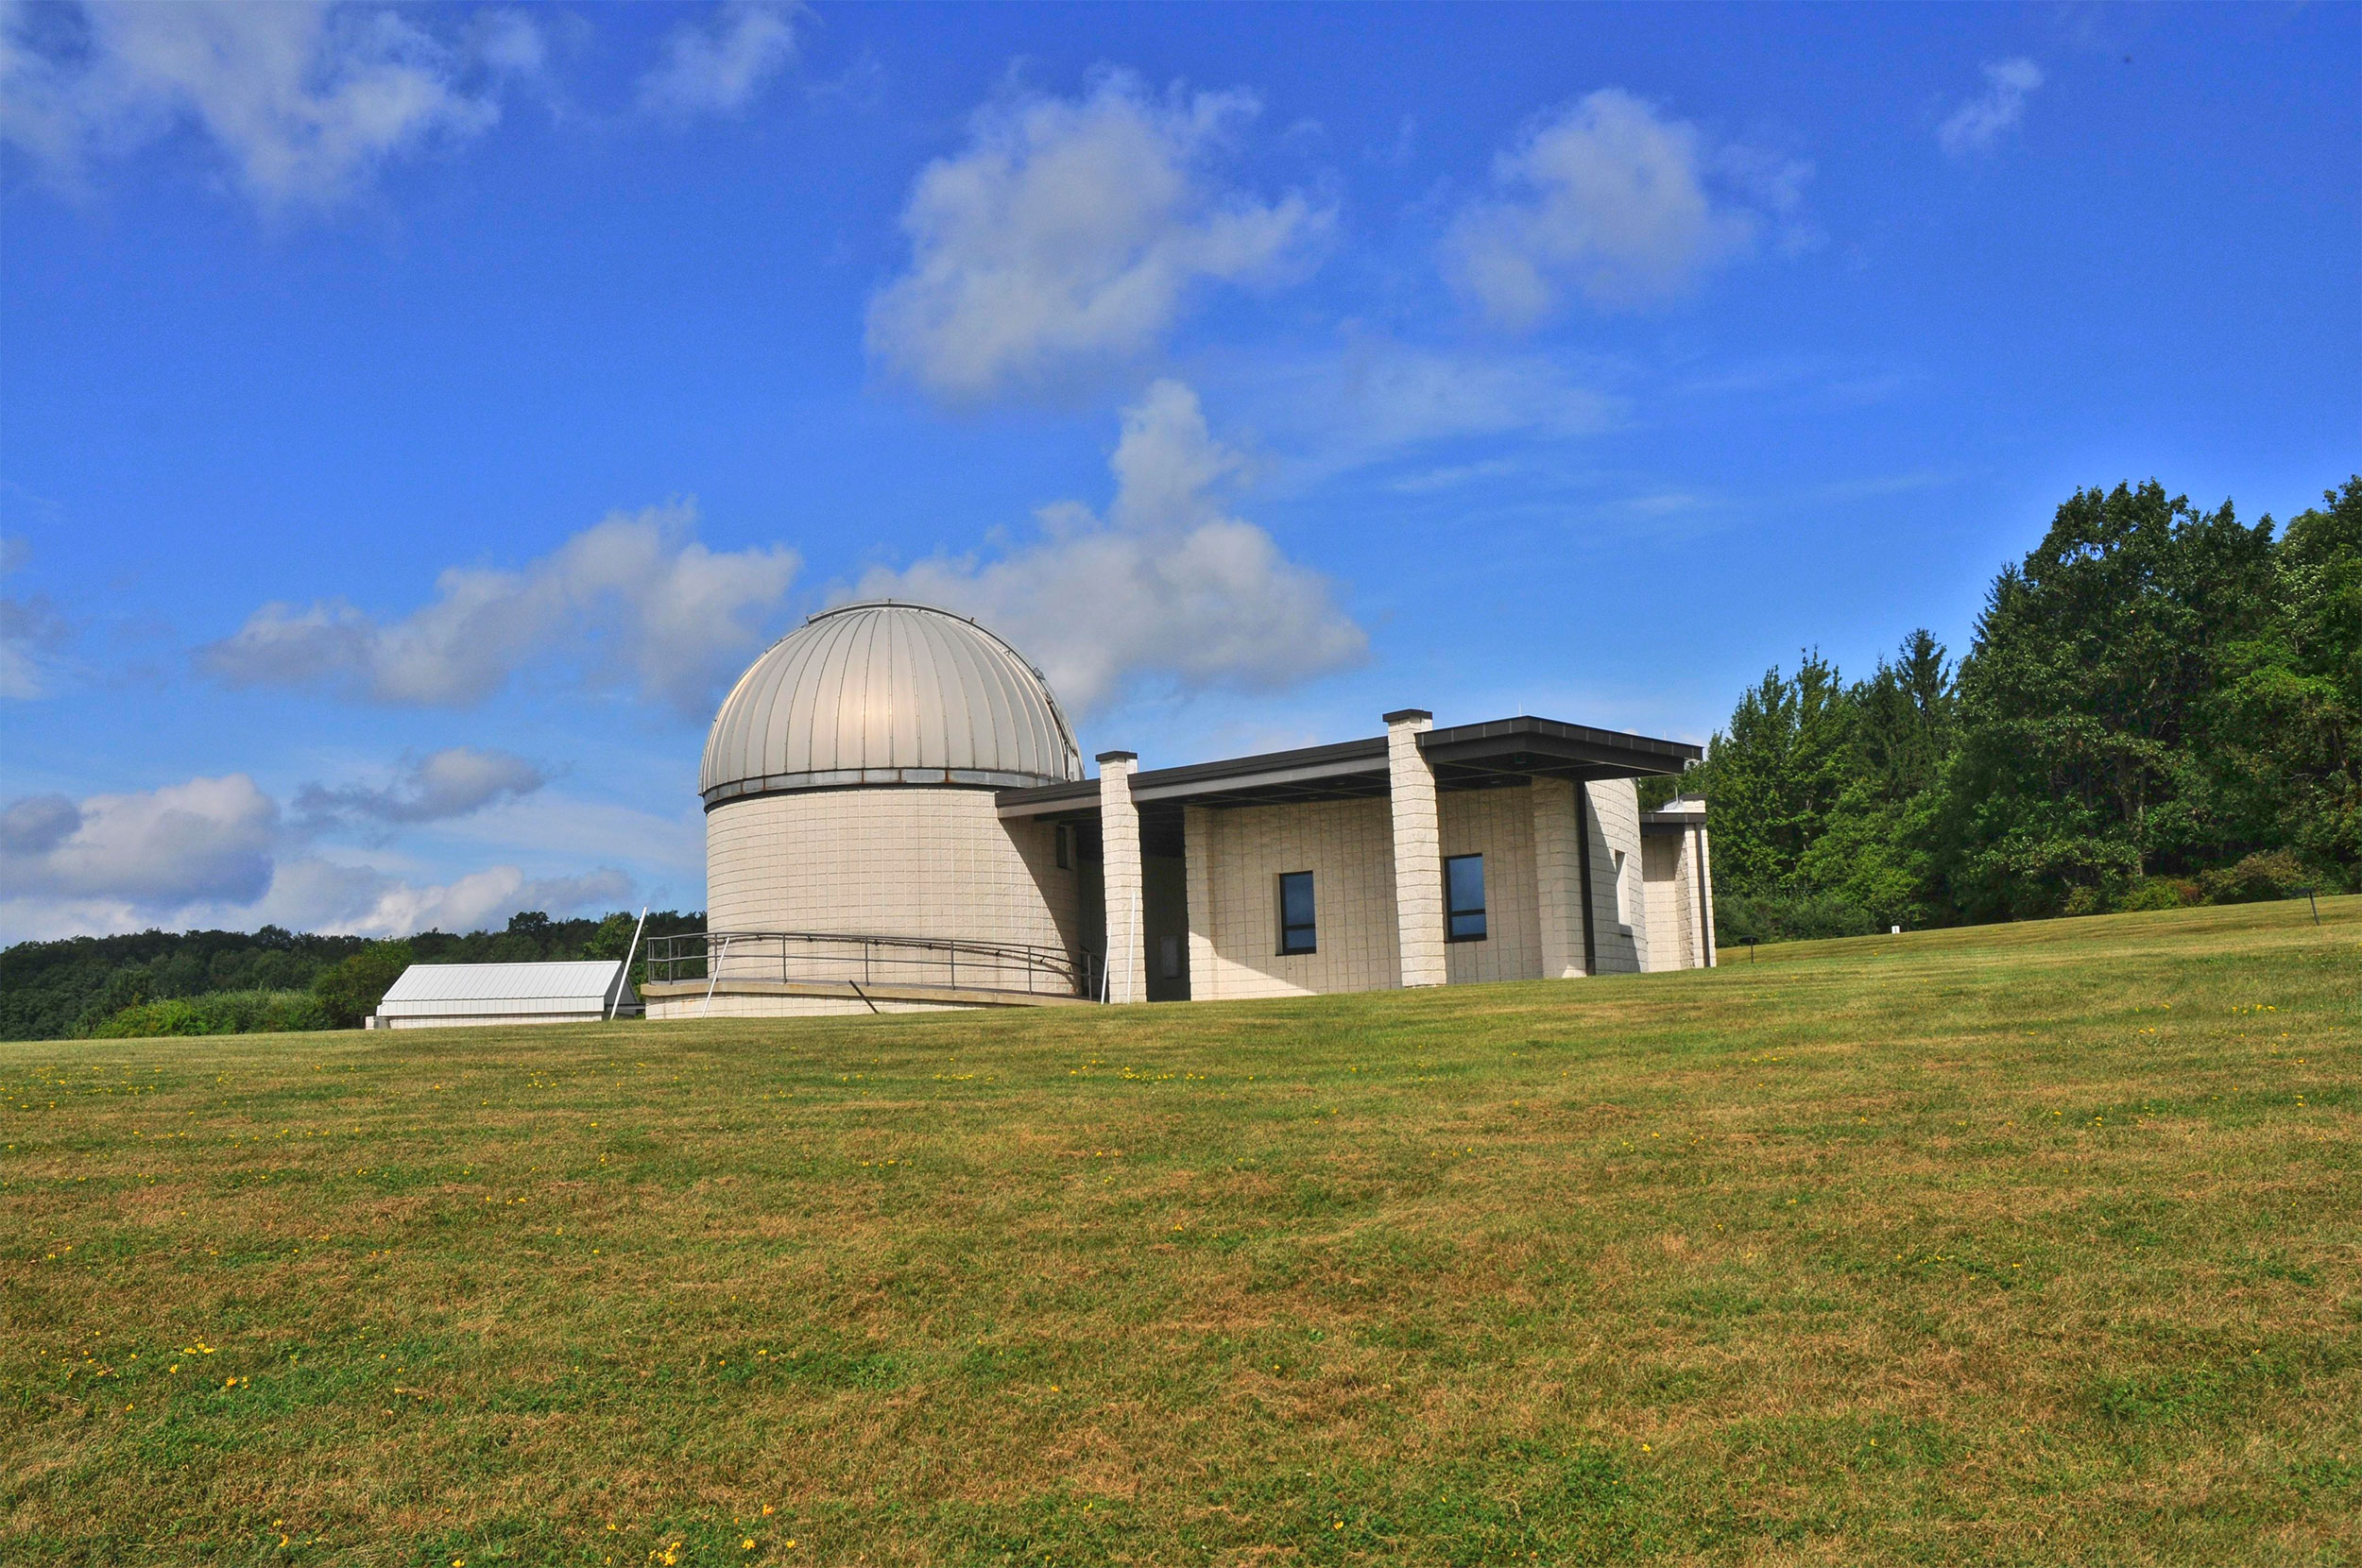 The Eileen Collins Observatory at Corning Community College.